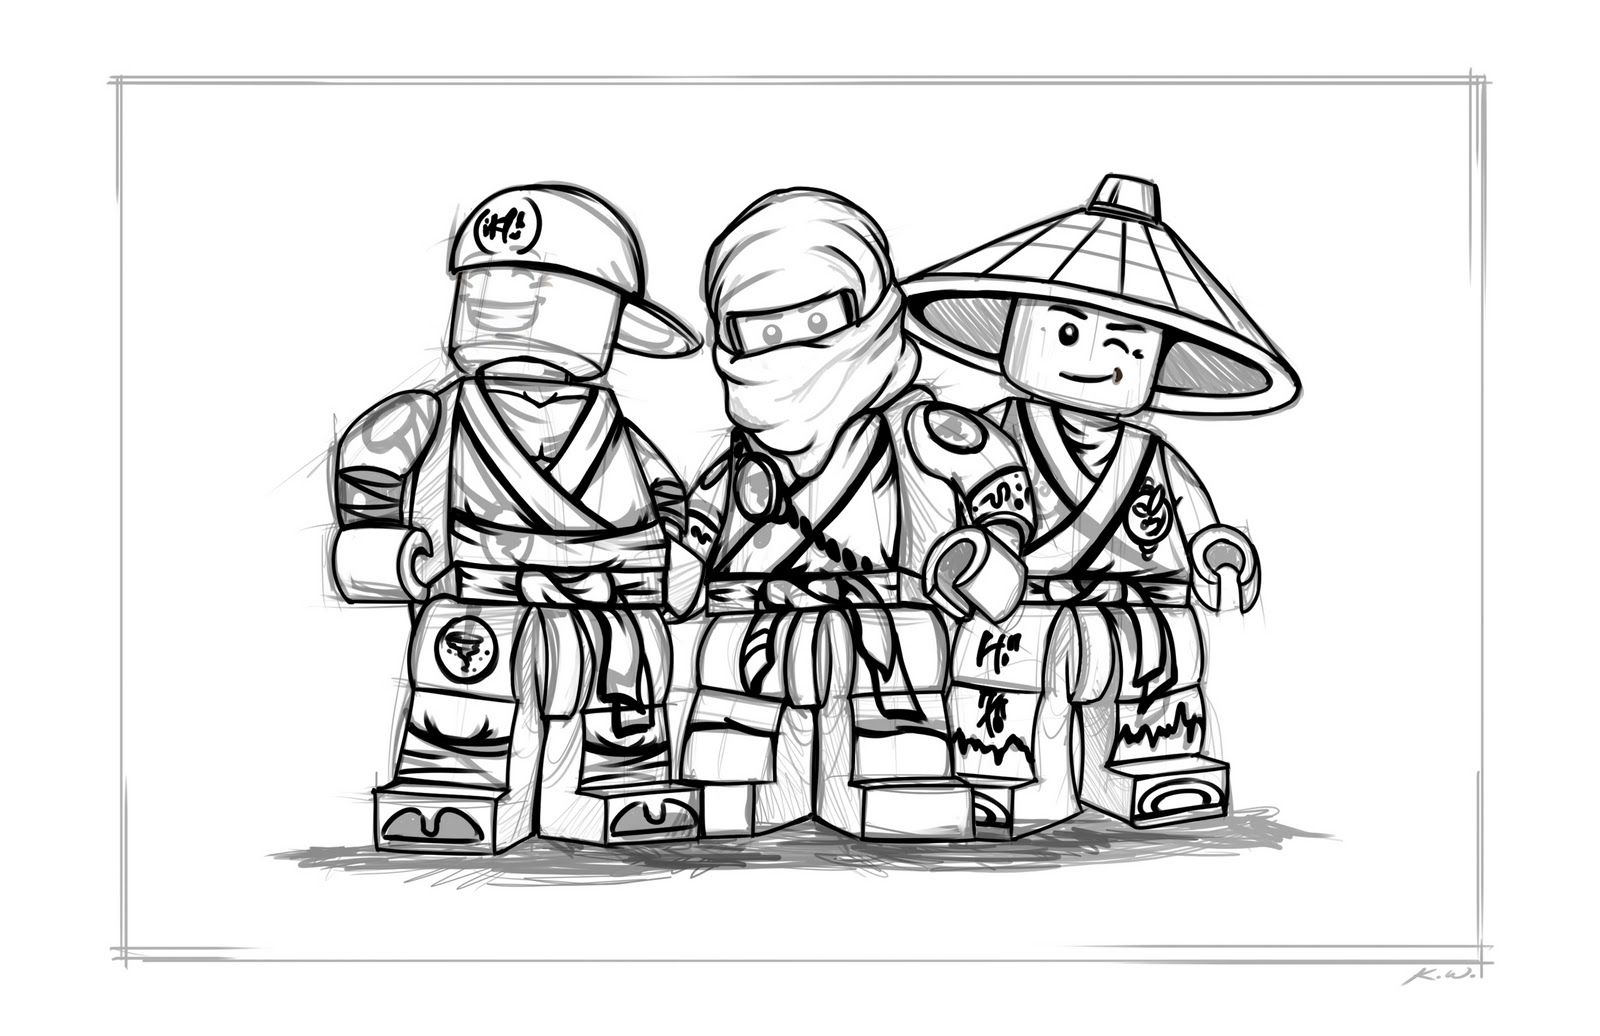 Lego Ninjago Ausmalbilder Zum Ausdrucken : Ninjago Coloring Pages Lego Ninjago Coloring Pages To Print